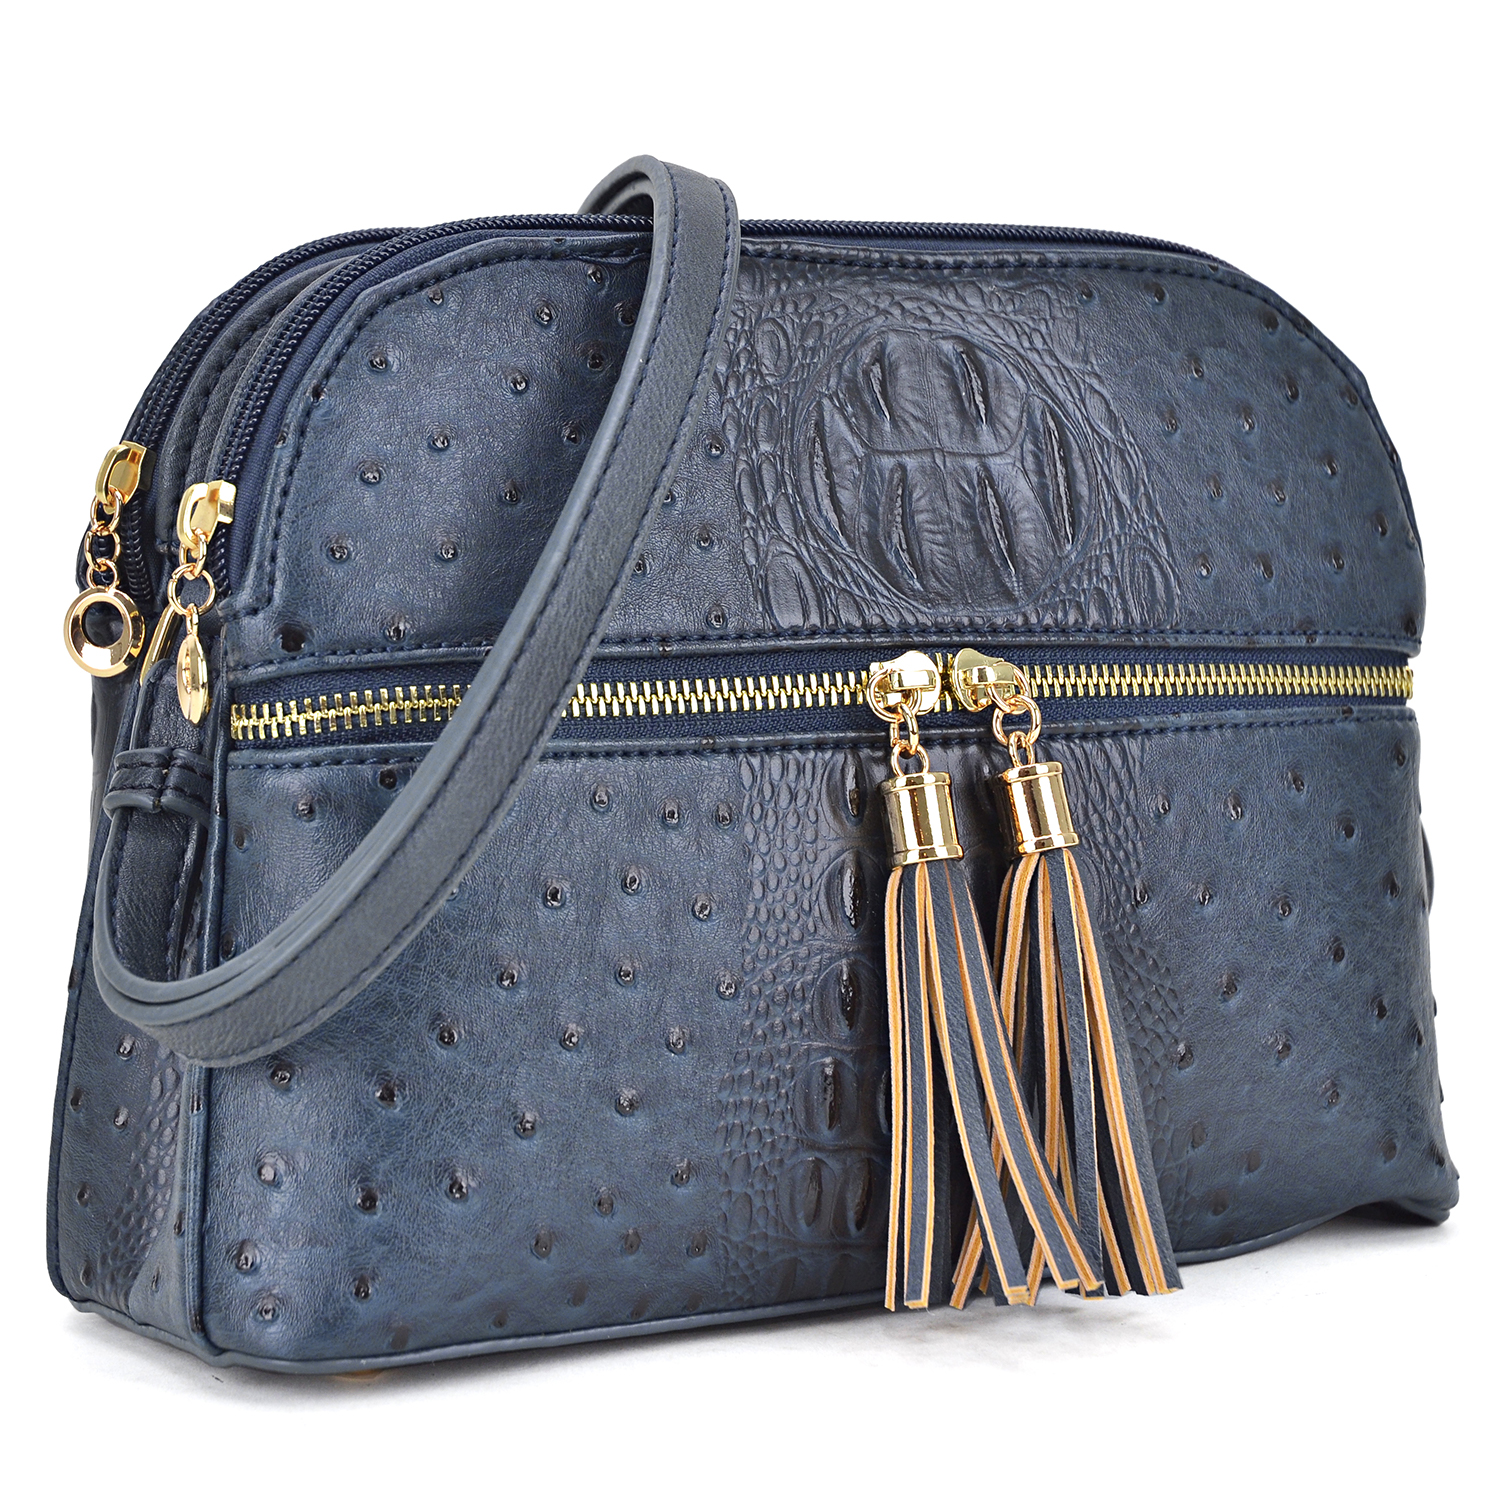 All-In-One ostrich accented/embossed Crossbody/ Messenger Bag with Front Zipped Compartment and with Decorative Tassel